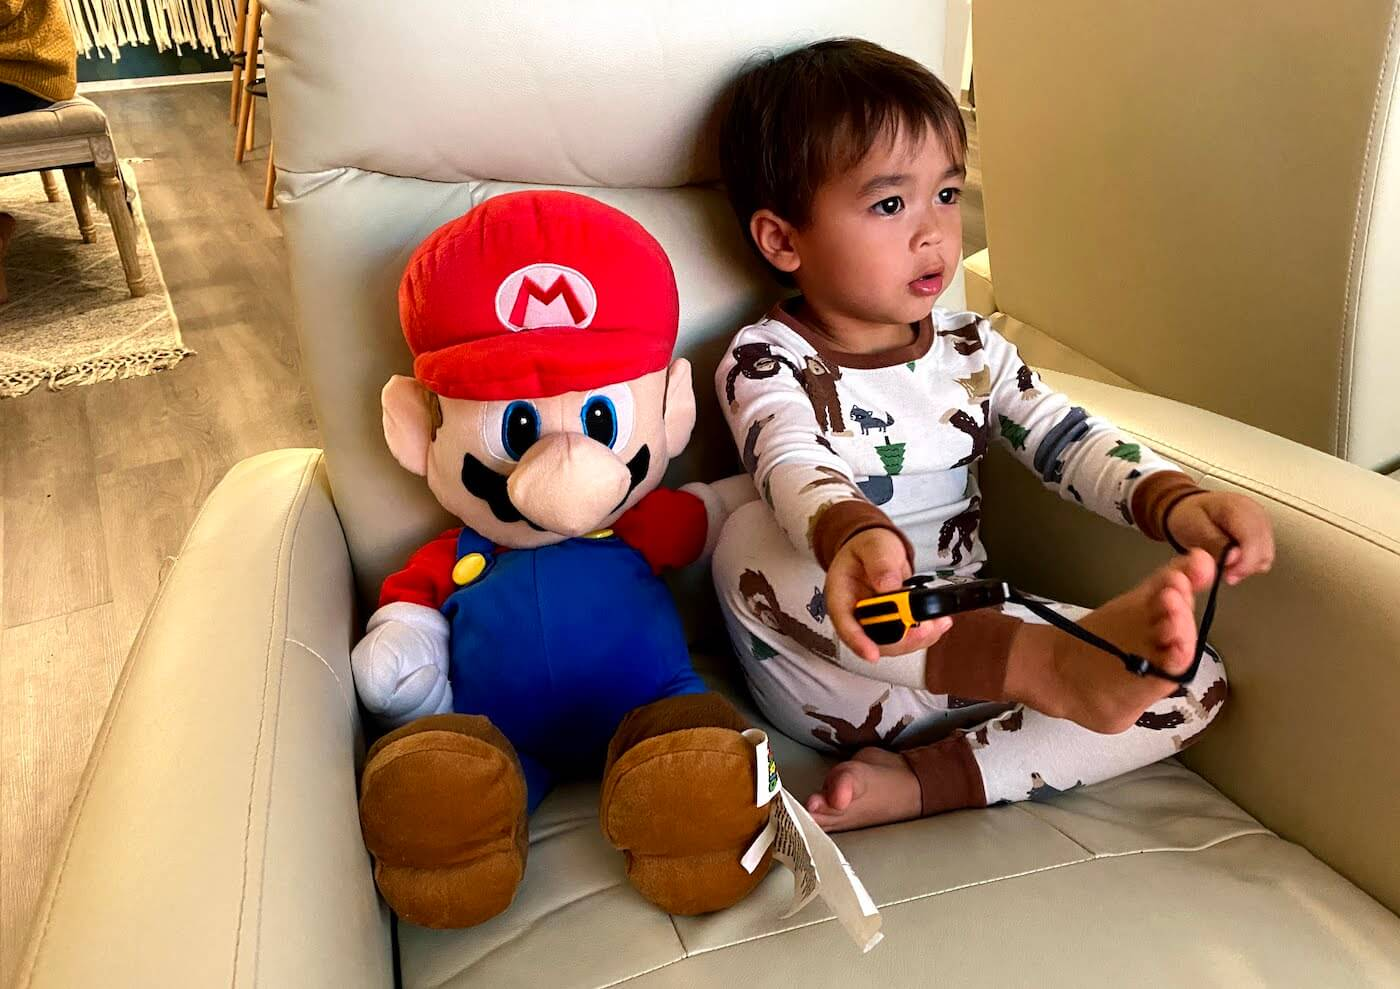 Sitting with Mario